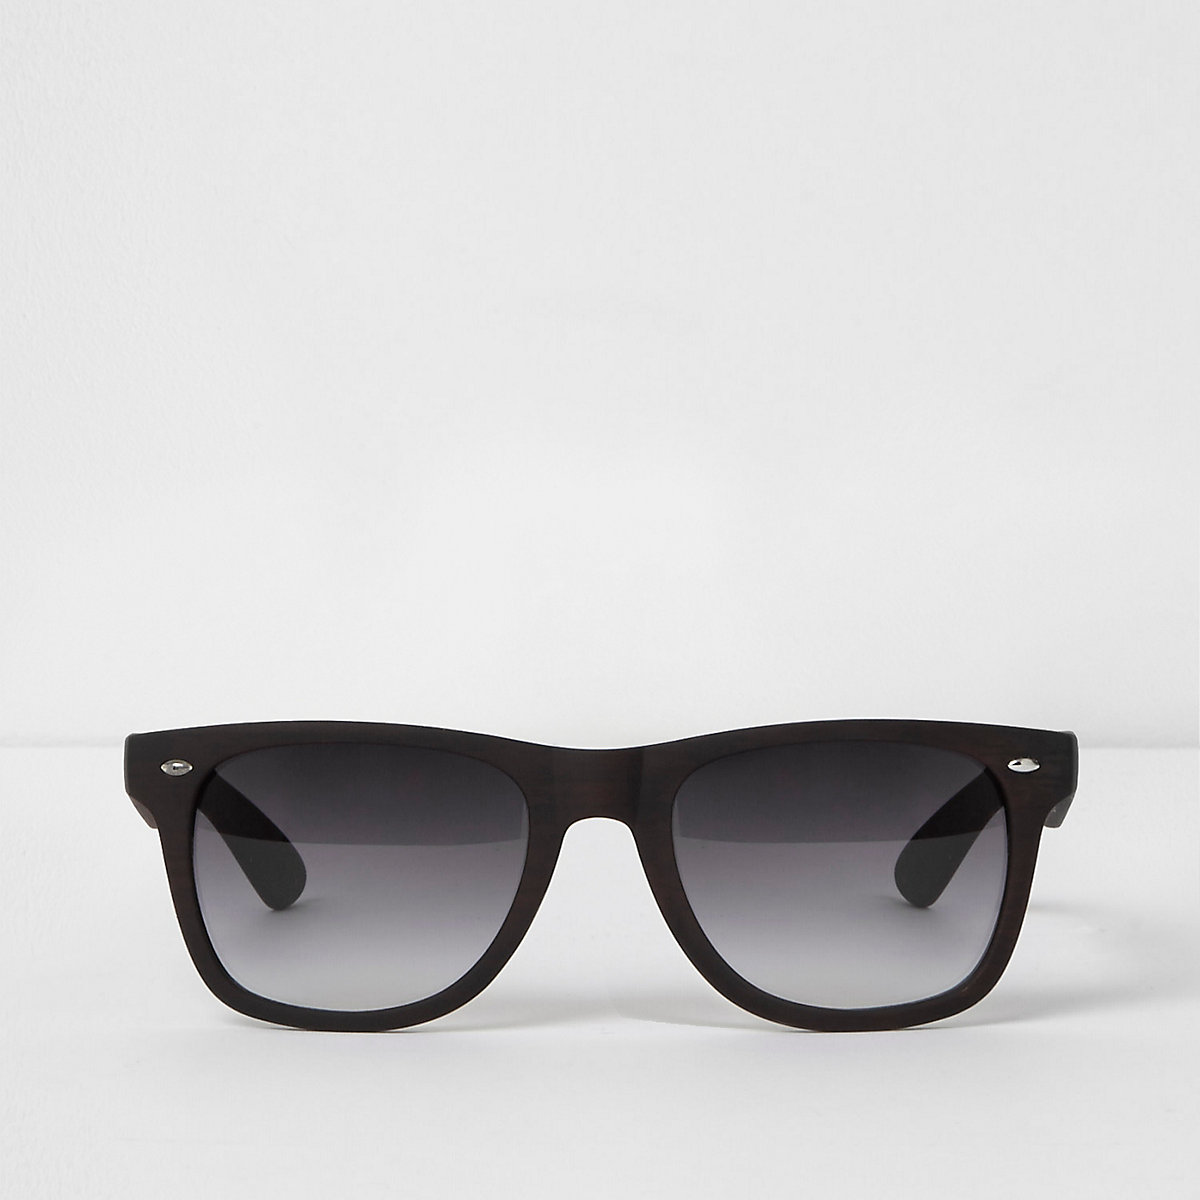 Brown wood effect retro sunglasses